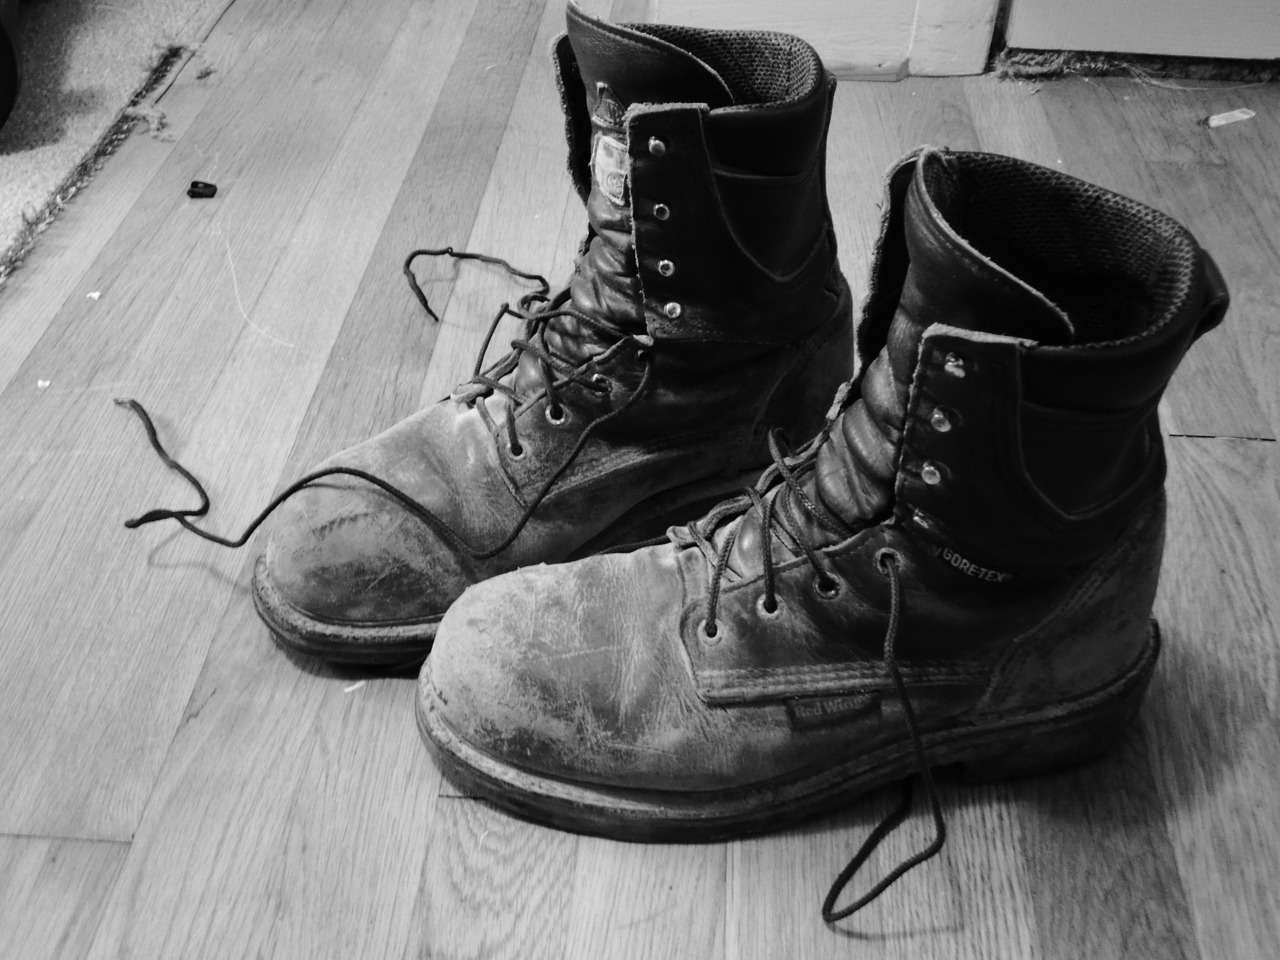 One thing I know about well is work. Best pair of boots I ever owned.